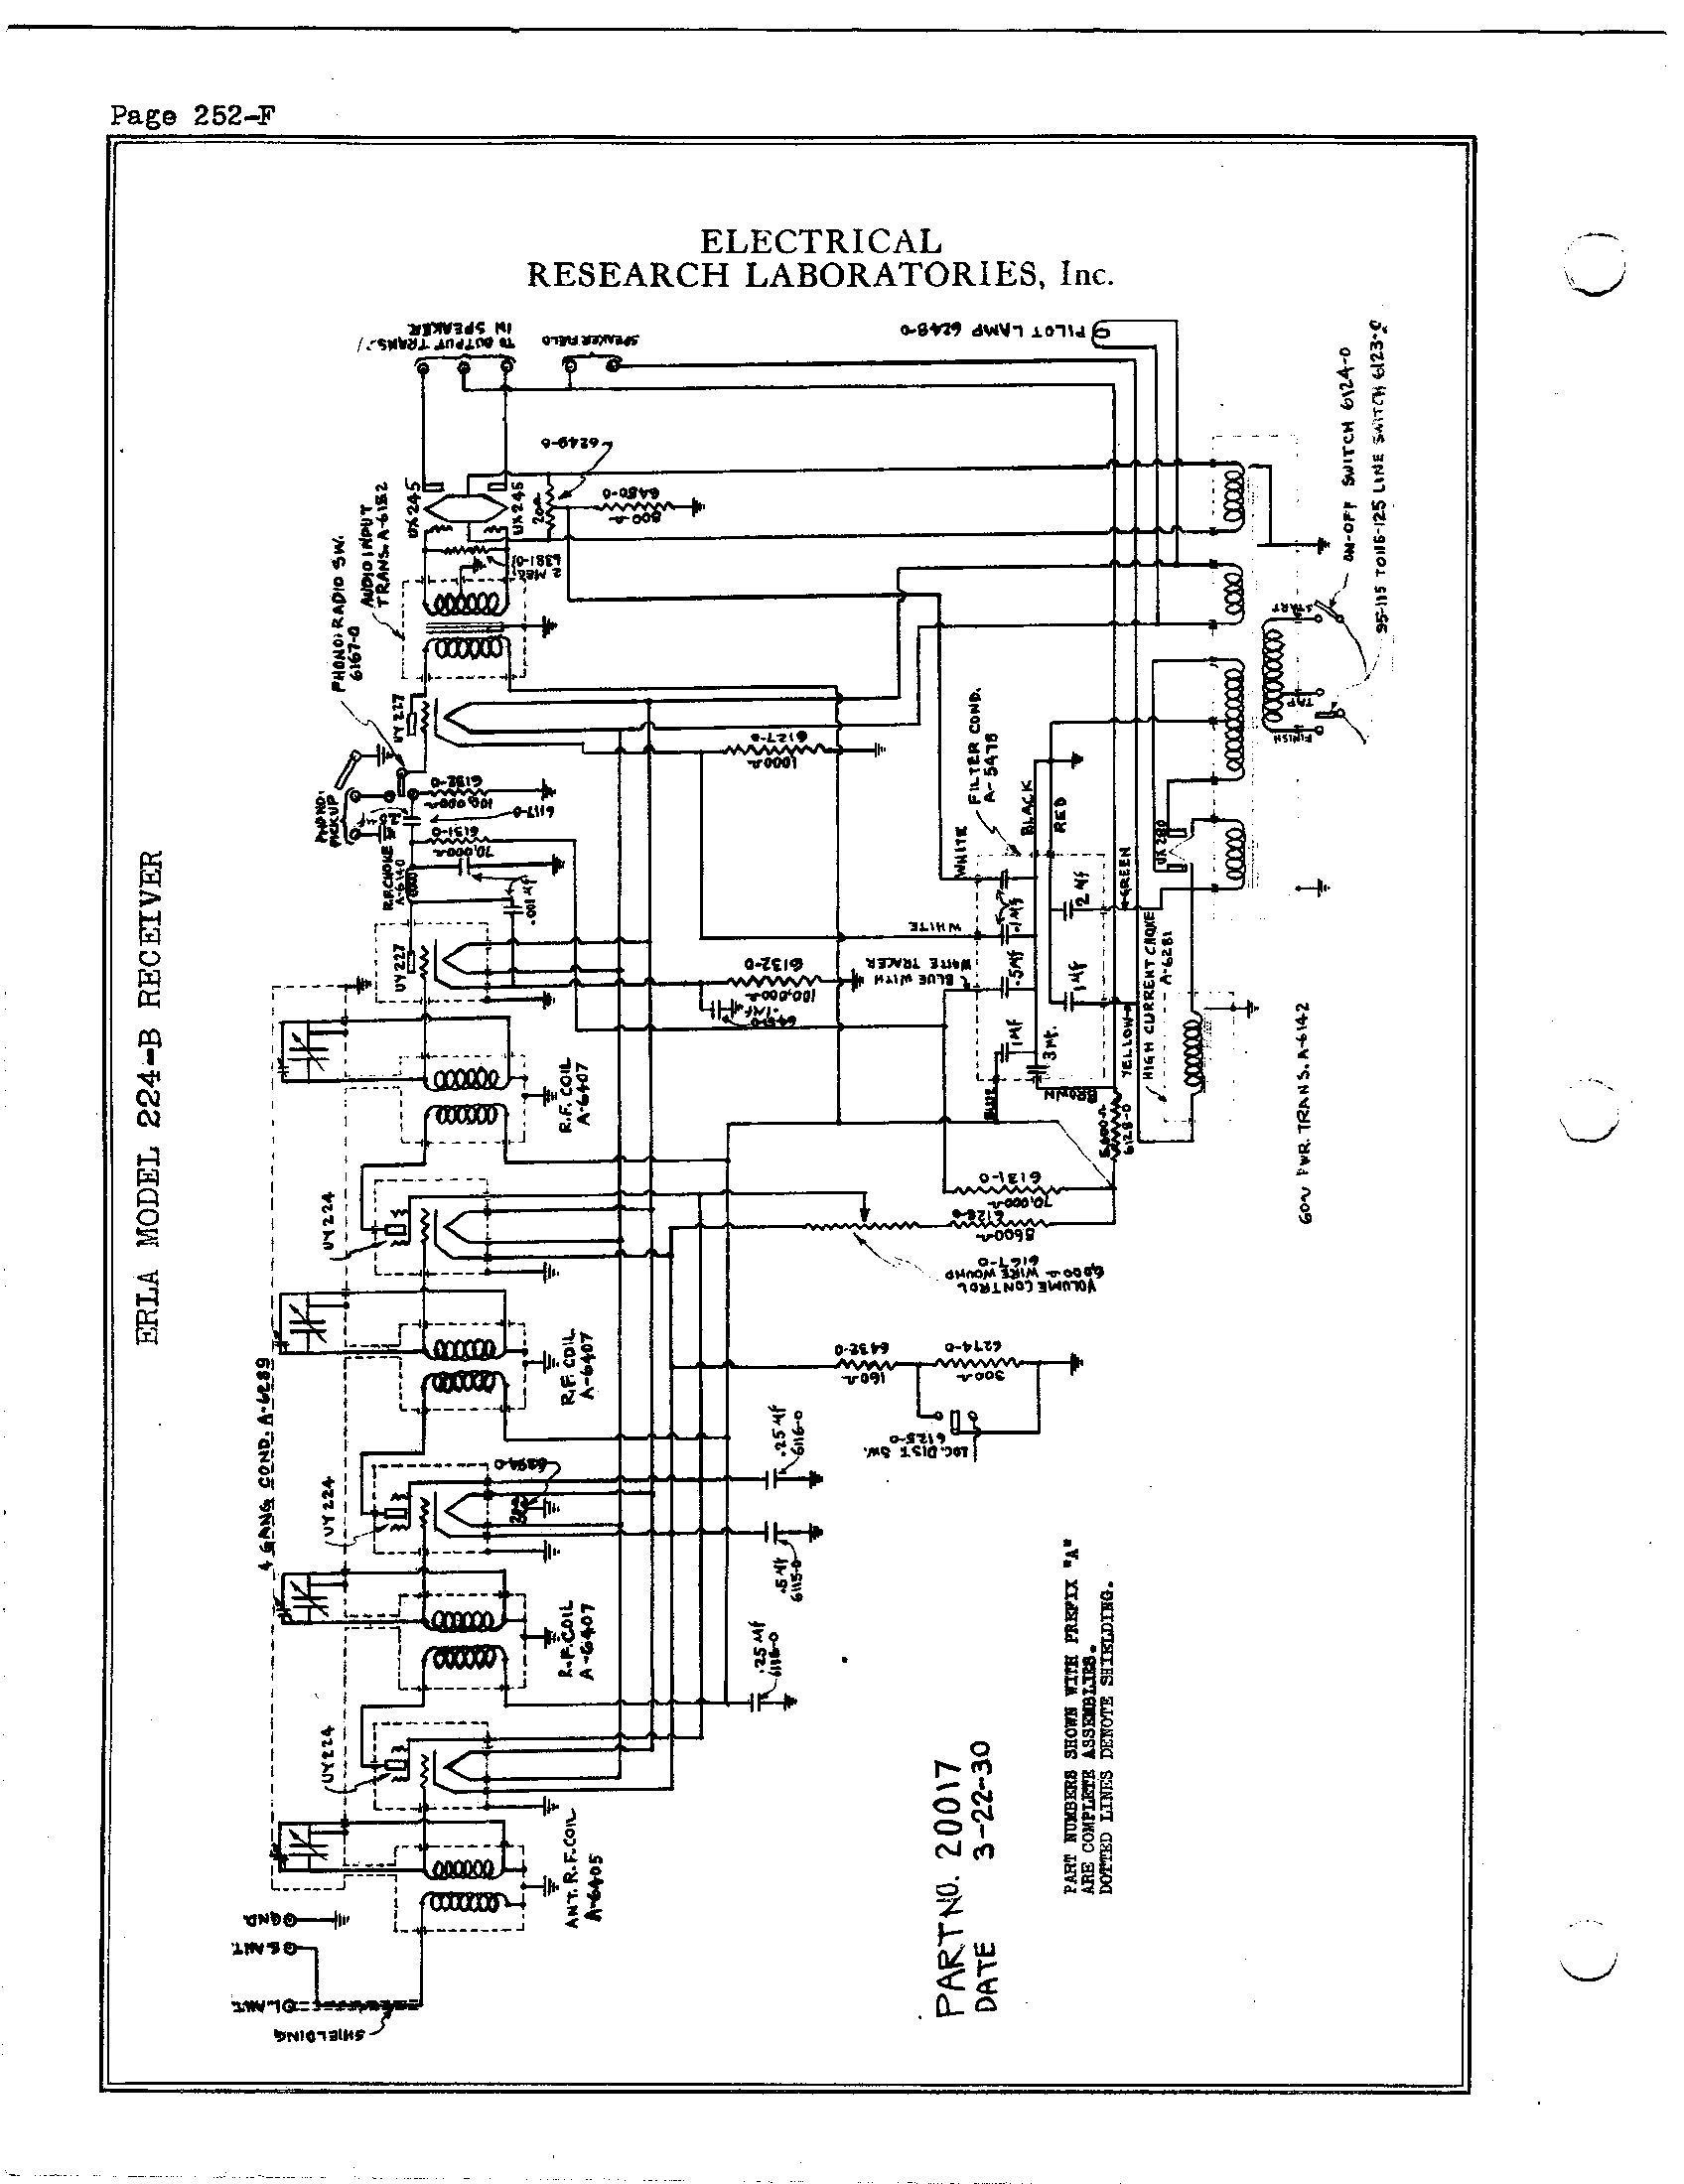 Black Lab Schematic Wire Center Schematics Of Delabs Powersupplies Electrical Research 224 B Antique Electronic Supply Rh Tubesandmore Com Diagram